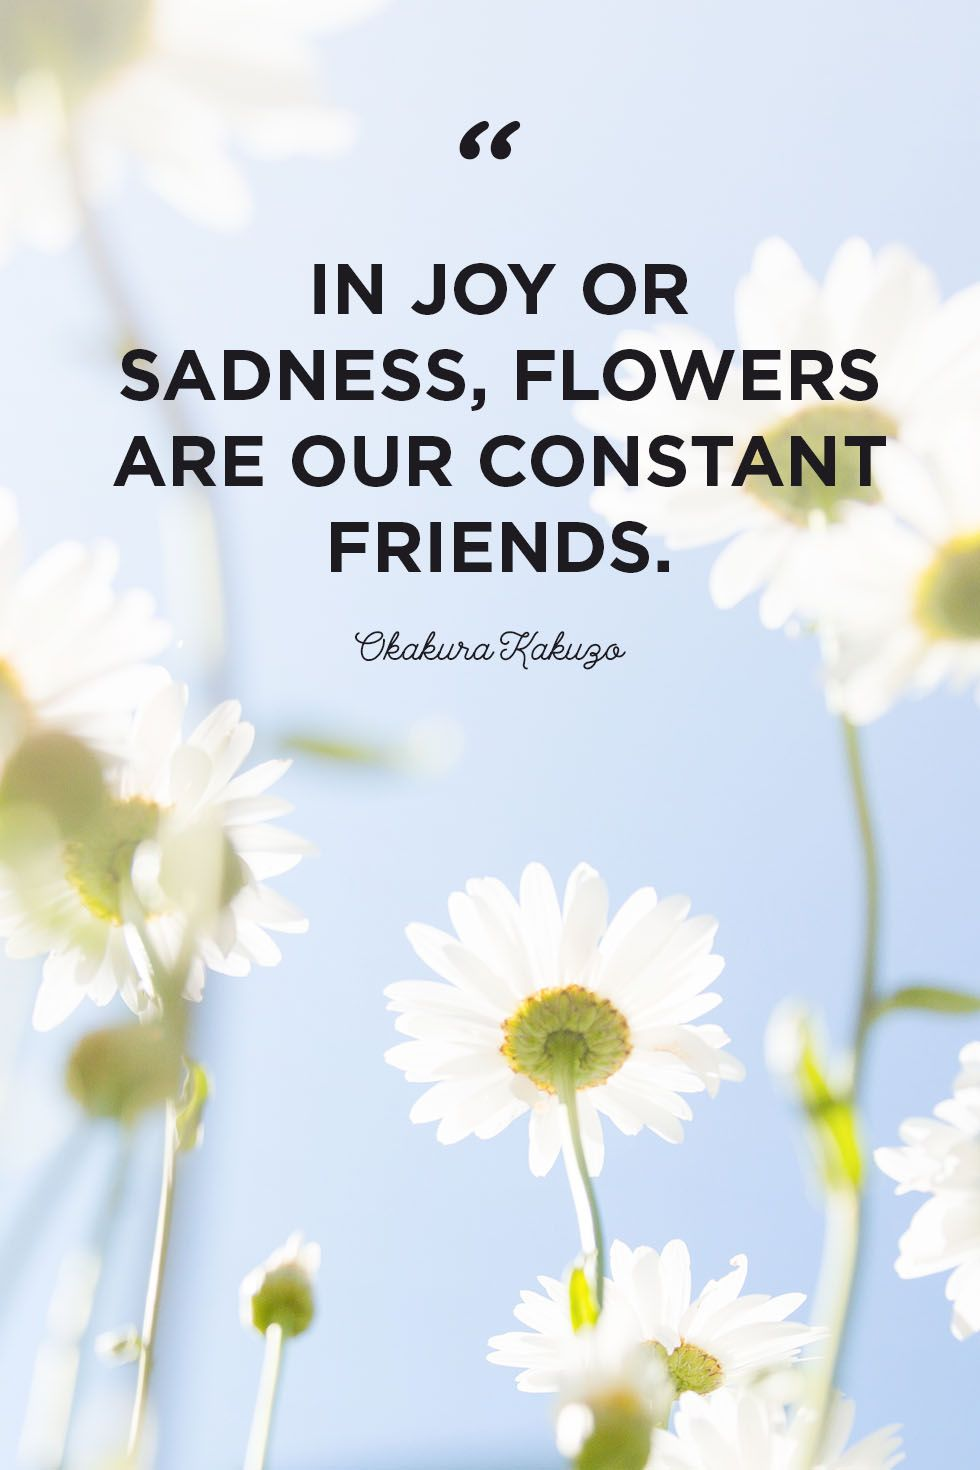 30 Inspirational Flower Quotes - Cute Flower Sayings About Life and Love